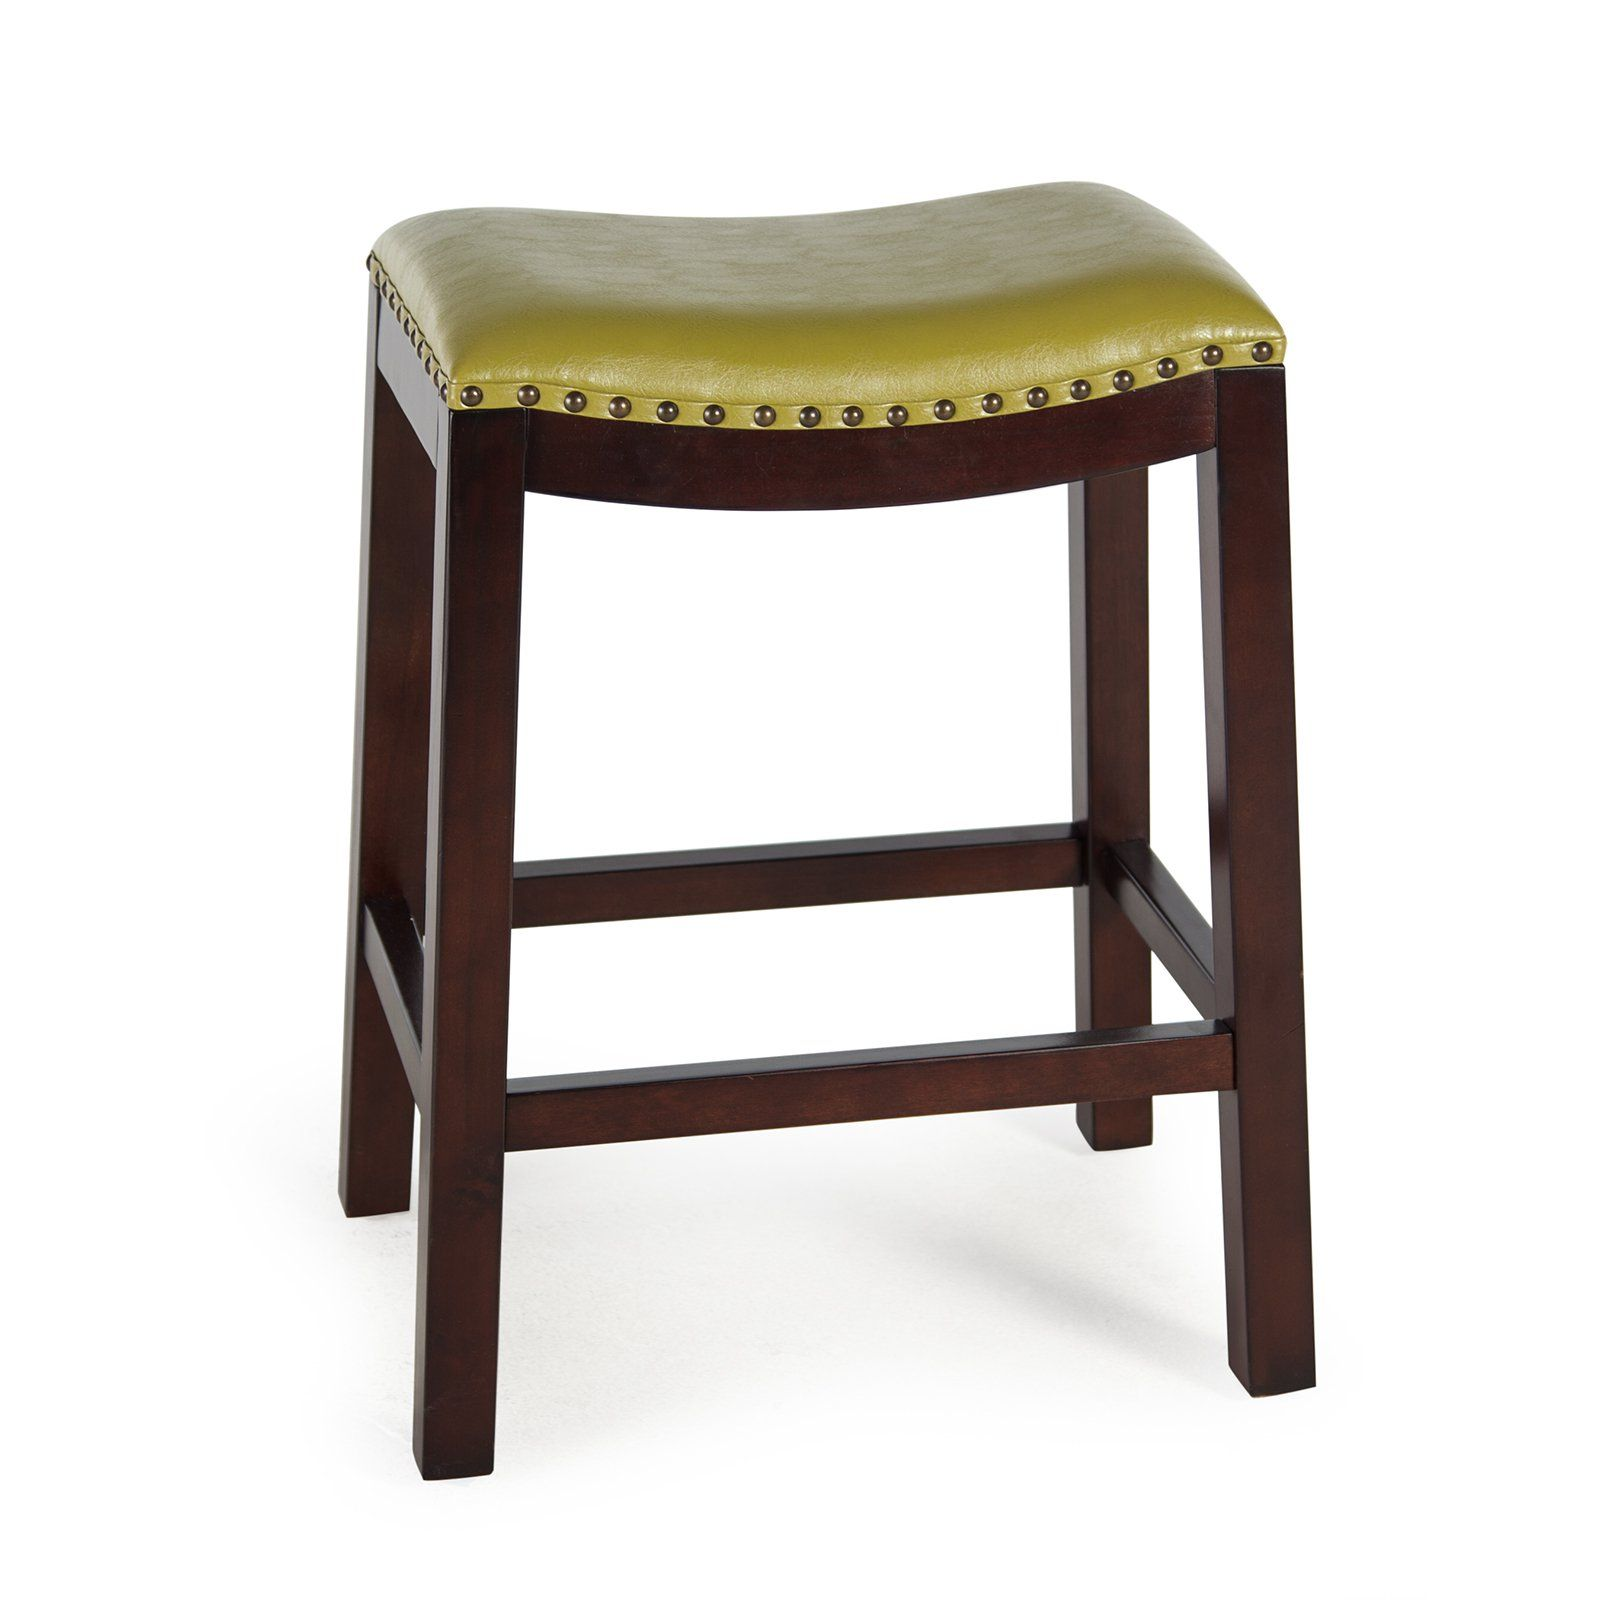 Belham Living Hutton Backless Counter Stool Olive Green Counter